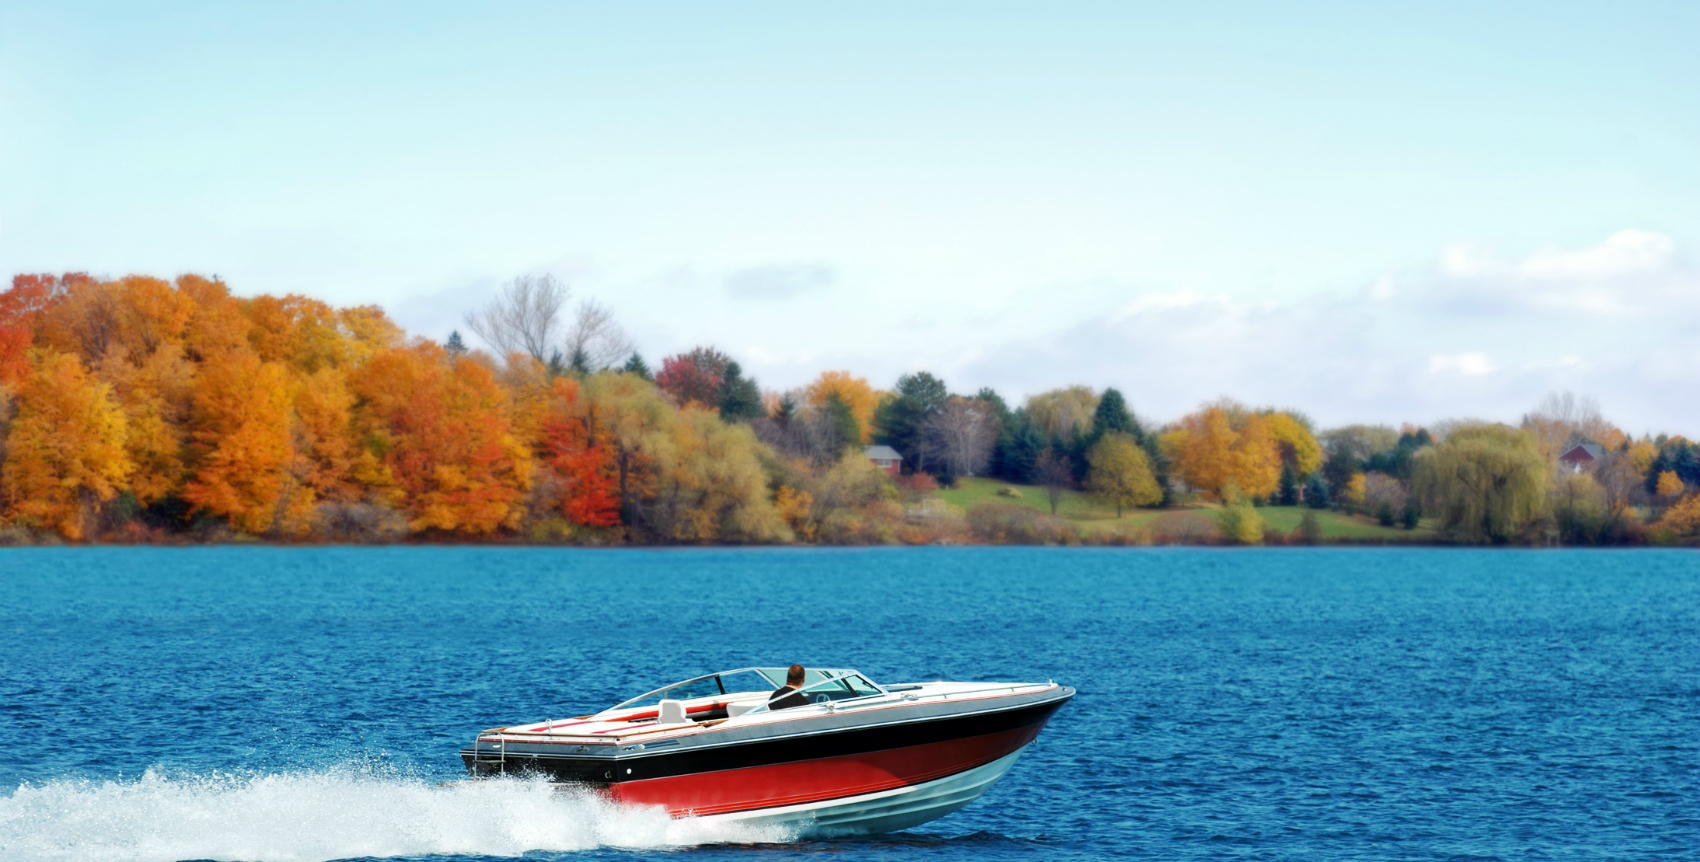 Fall Boating: 5 Best Boating Spots to Enjoy Nature's Vibrant Fall Colors